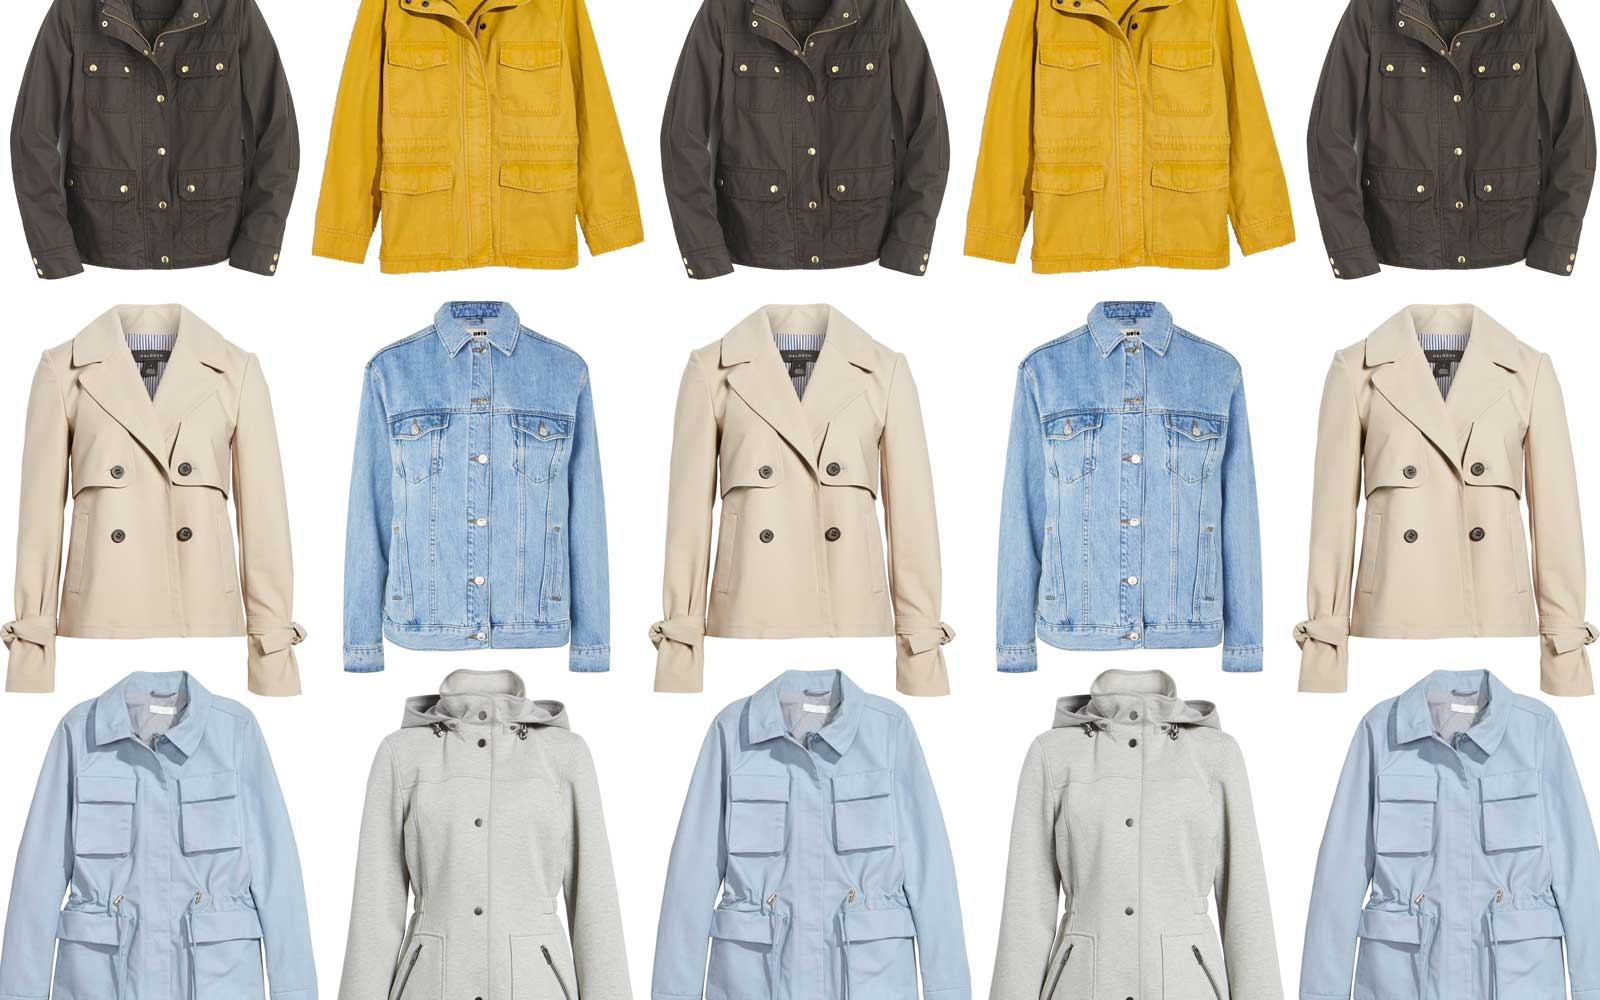 Chic Spring Jackets to Wear on Your Next Trip